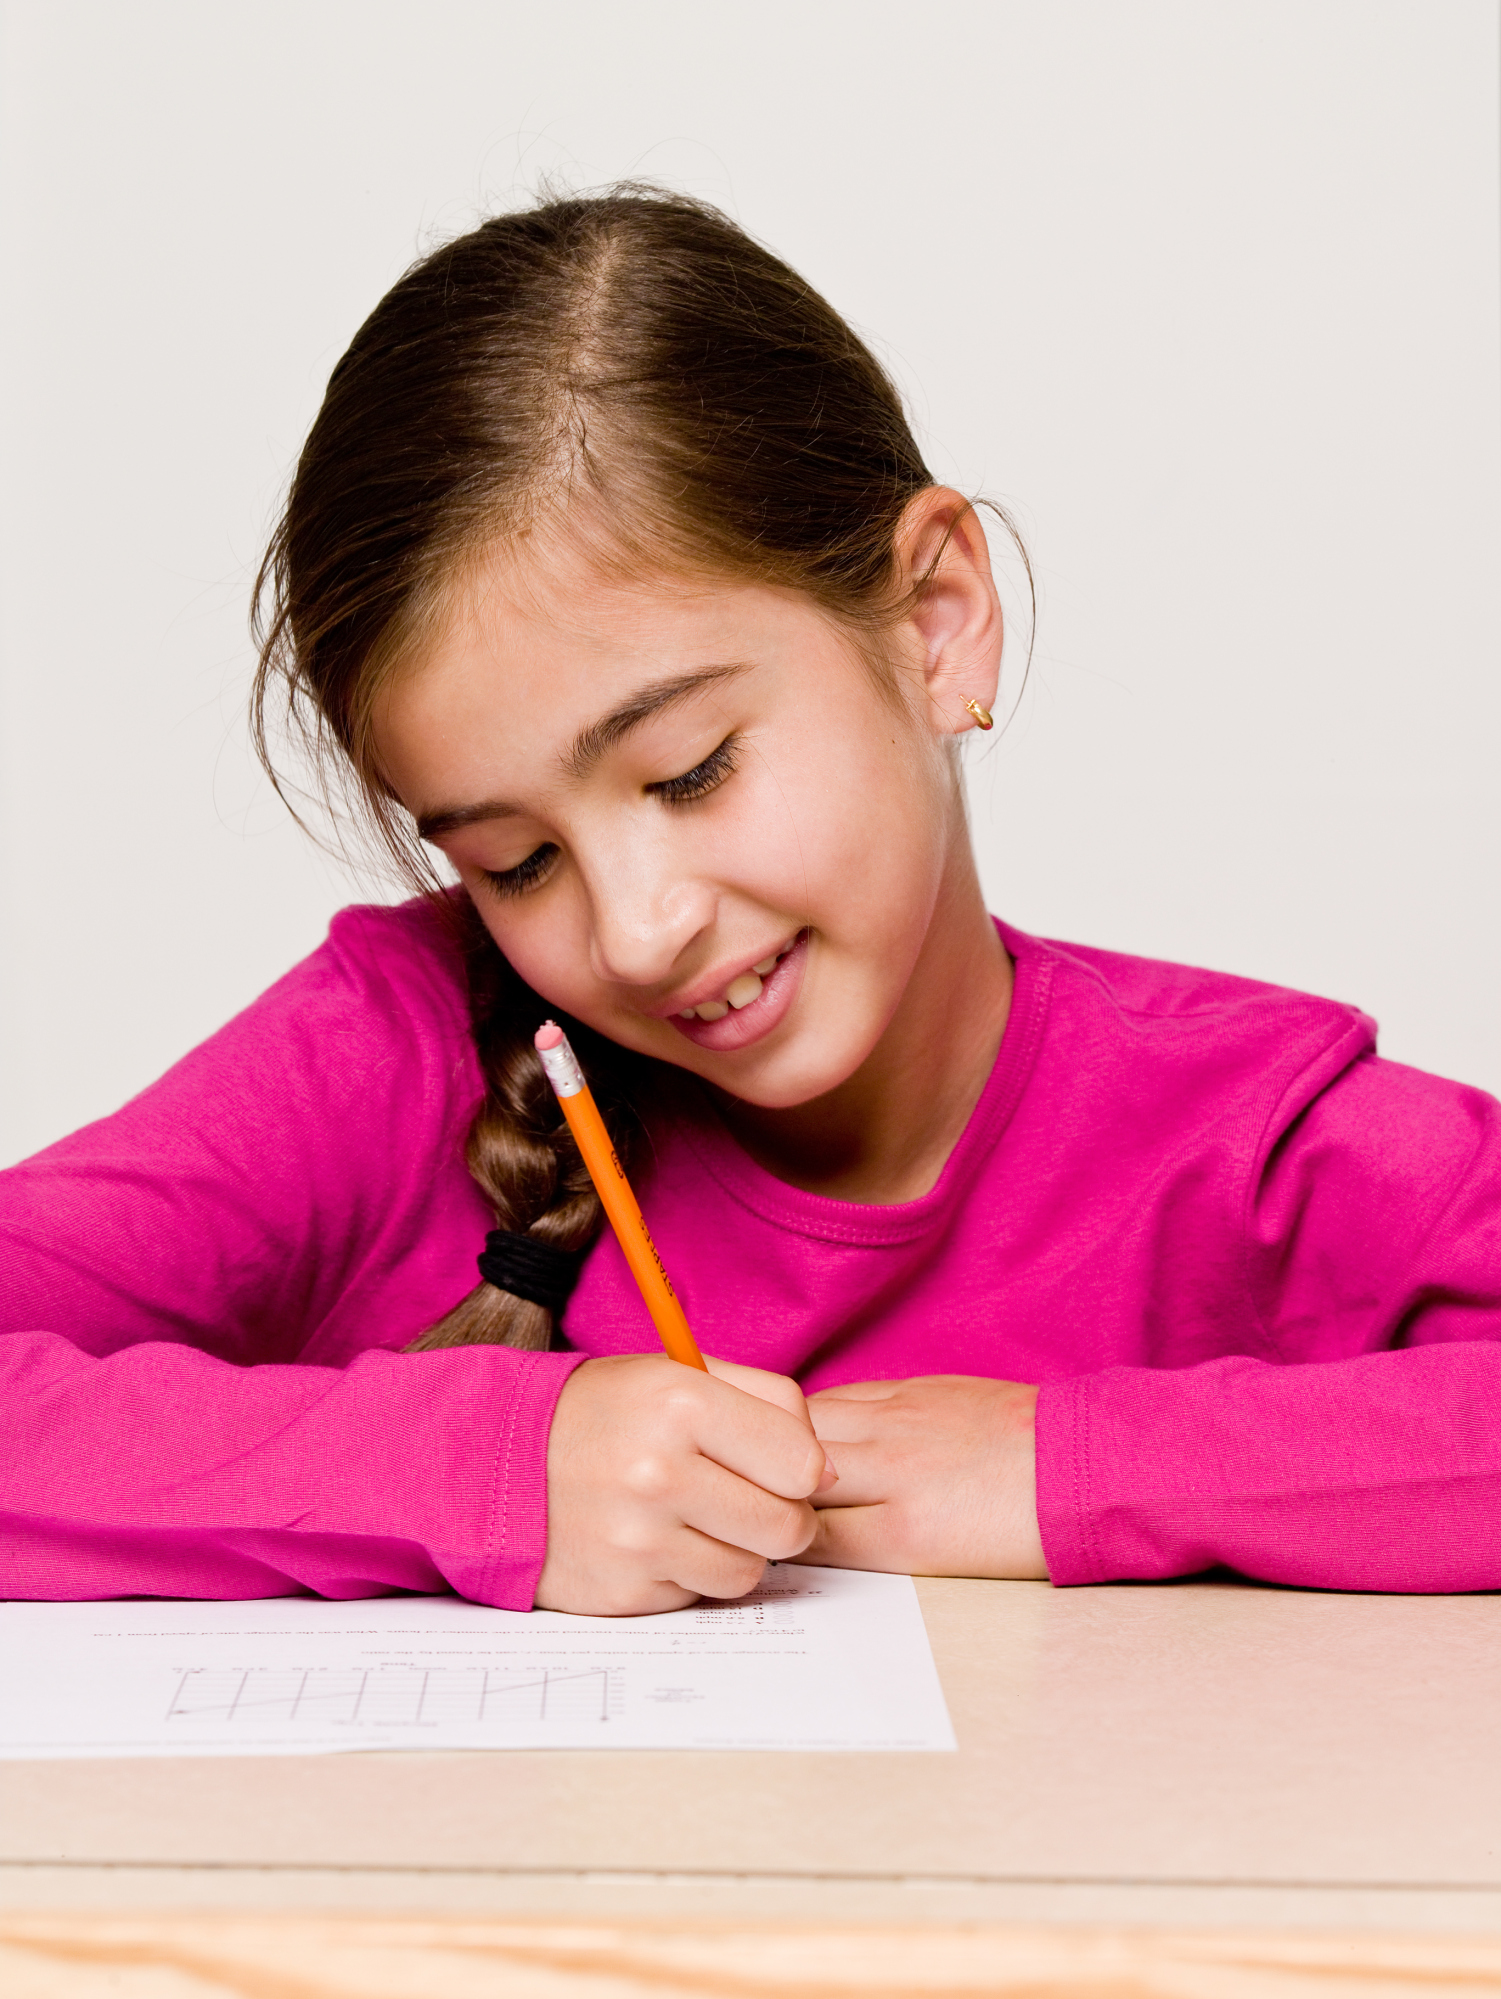 What Is Gifted In Lexile Scores